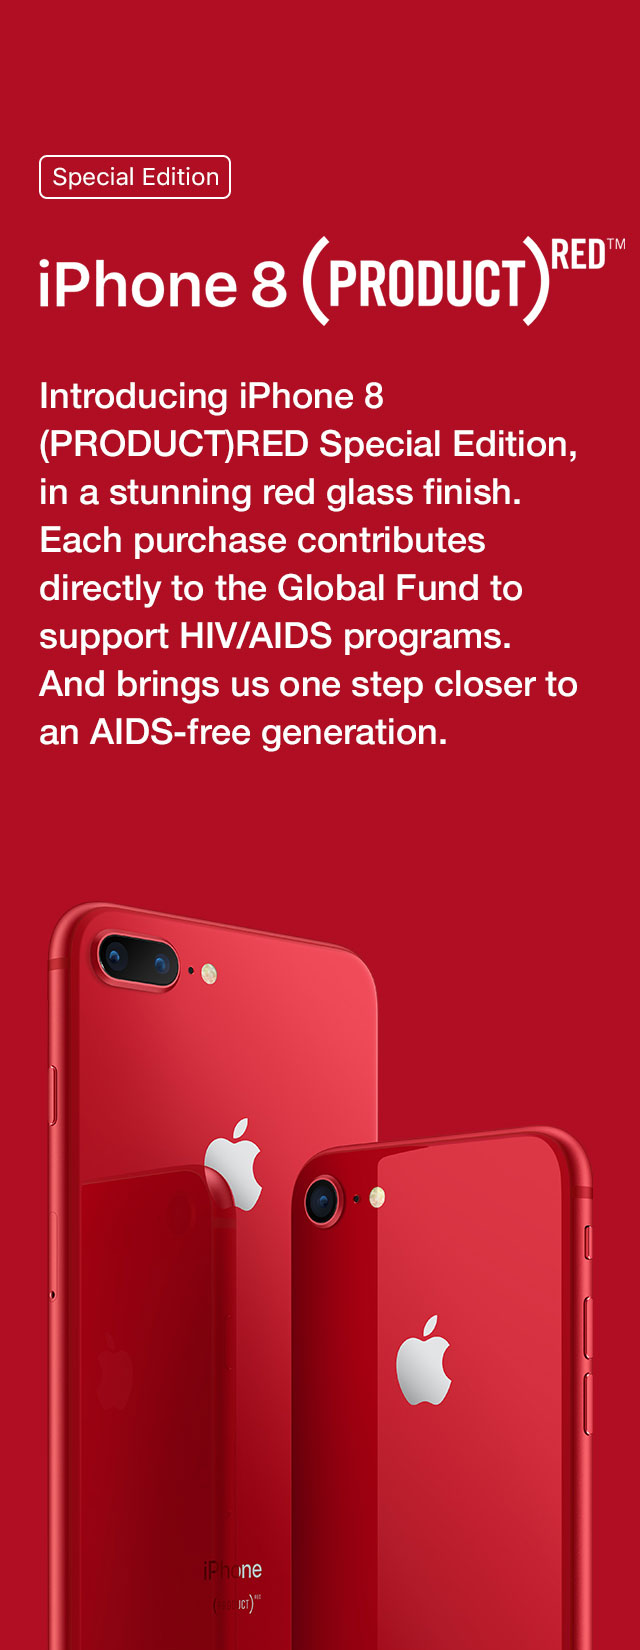 iPhone 8 (PRODUCT)RED in a red glass finish. Each purchase contributes to the Global Fund to support HIV/AIDS programs.